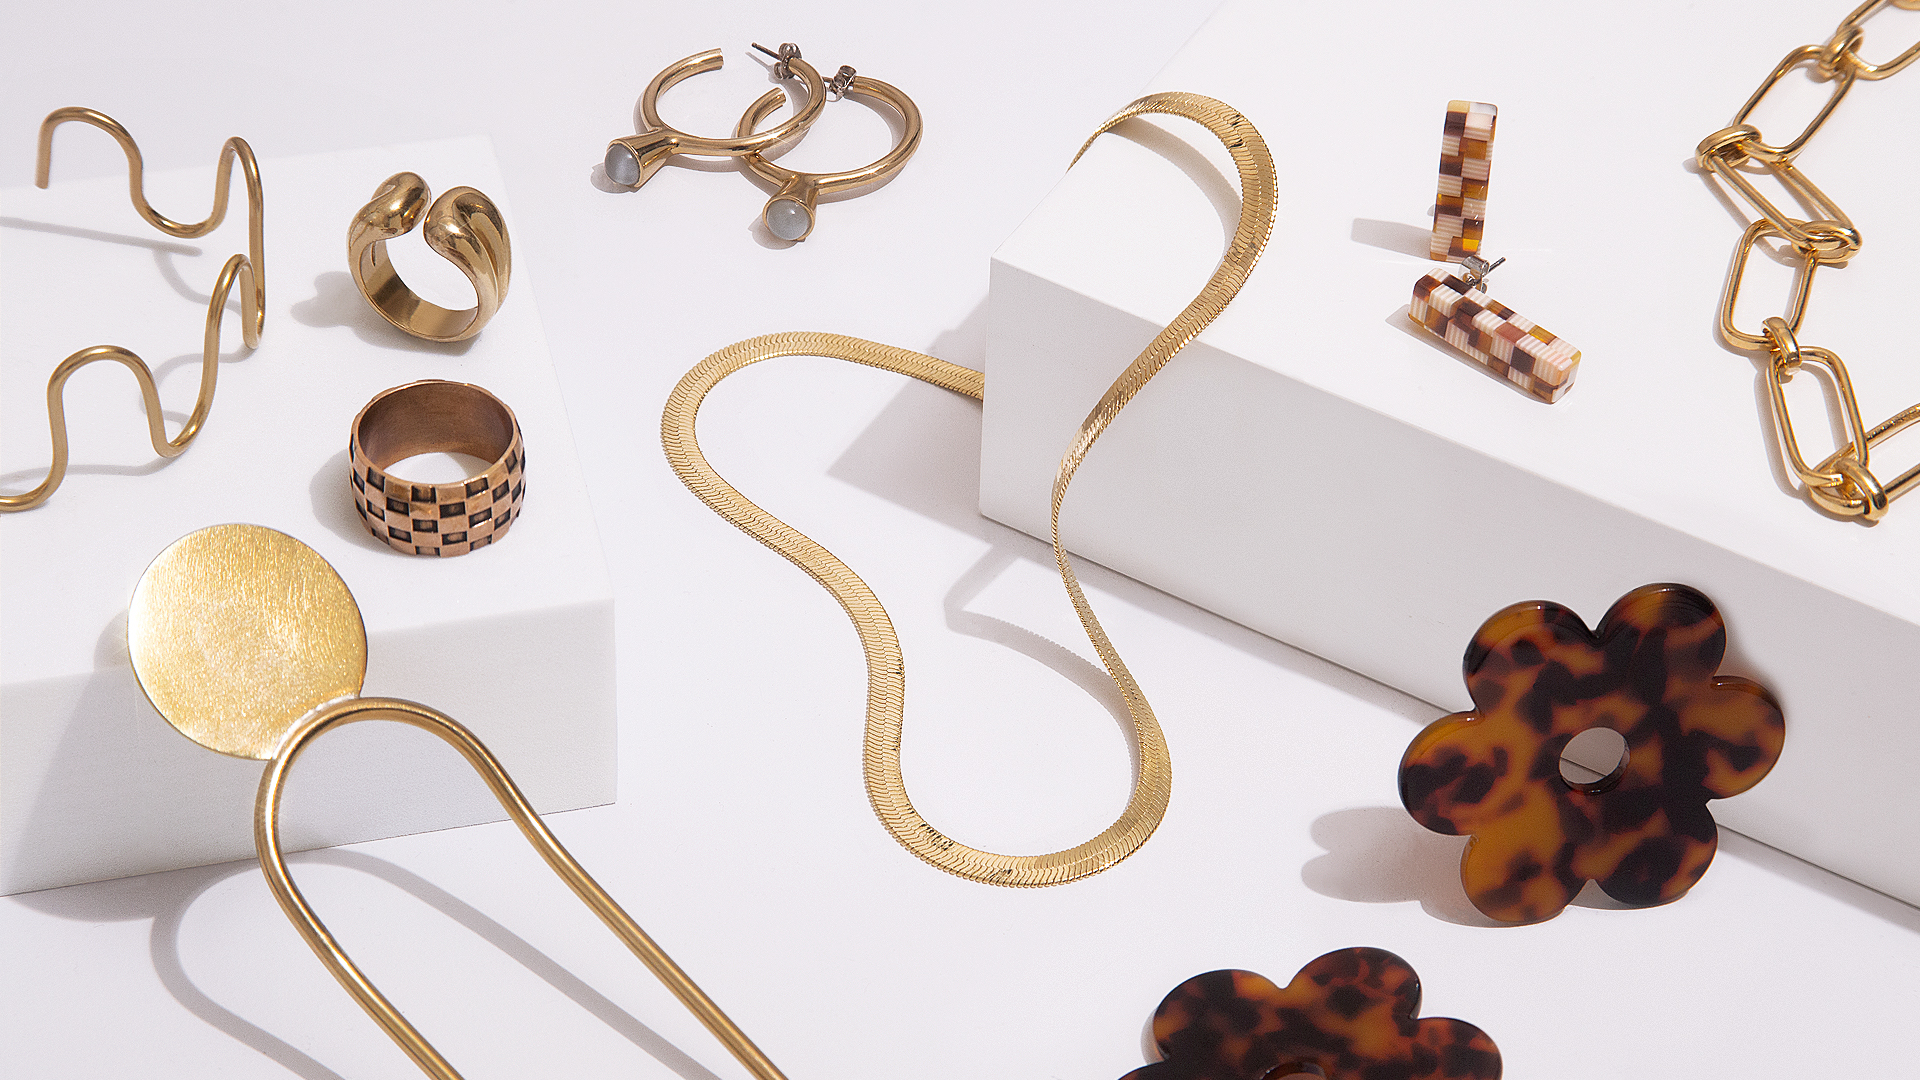 Collections02_Jewelry_1920x1080